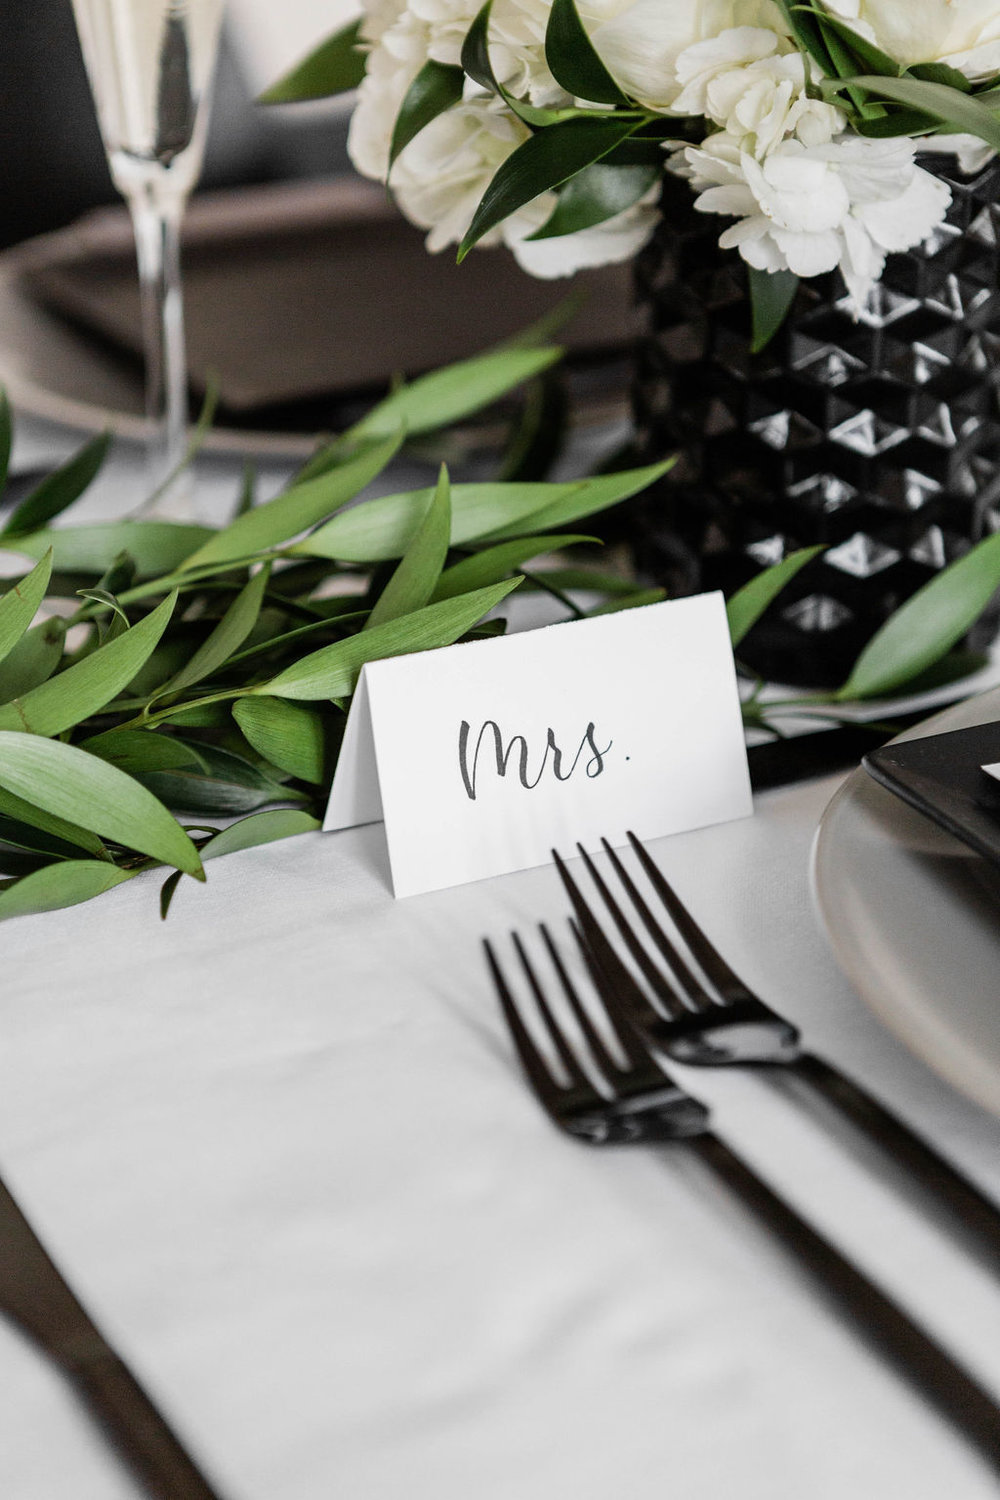 Black Calligraphy | Place Card | Black flatware | Chicago History Museum | Black and White Wedding | Black Tie Wedding | Your Day by MK | Chicago Wedding Planner |